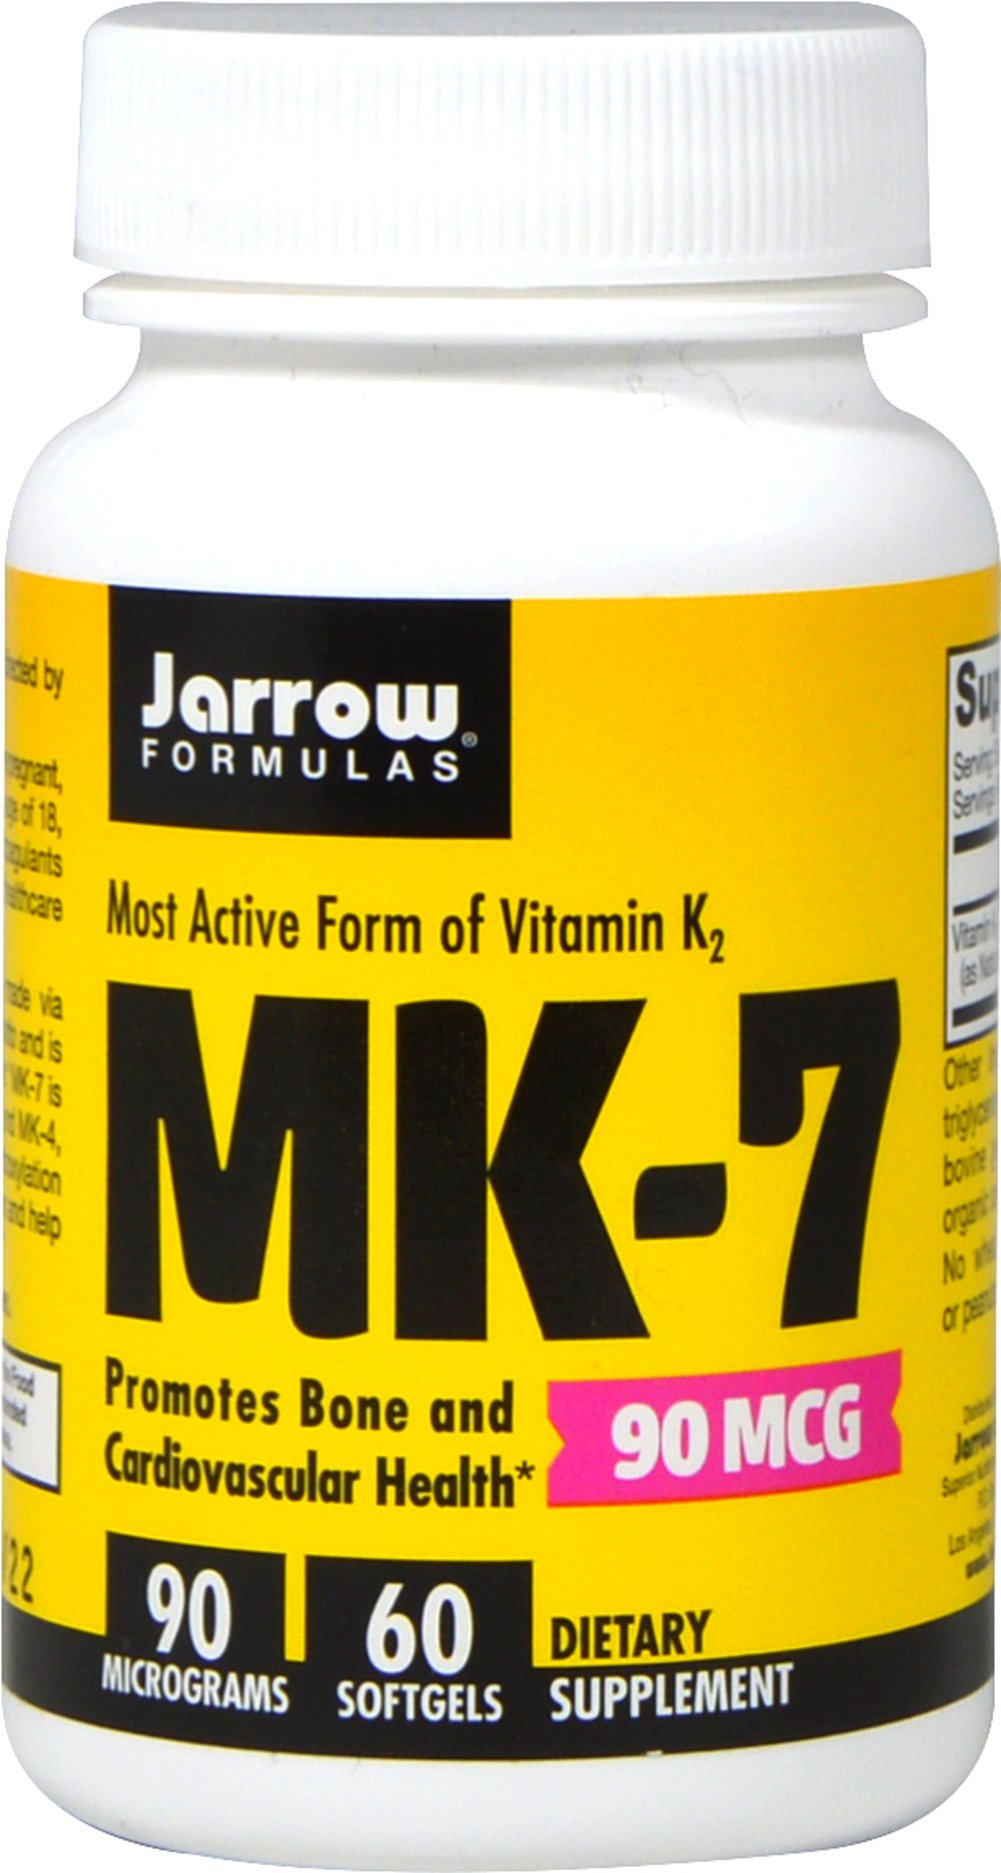 MK-7 Vitamin K2 90 mcg <p><strong>From the Manufacturer's Label:</strong></p><p>MK-7 is made via fermentation by Bacillus subtilus natto.  MK-7 (Menaquinone-7) is an enhanced bioactive form of vitamin K2 from Natto that is ten times better absorbed than K1 from spinach. MK-7 is responsible for the carboxylation of specific bone proteins needed for building bone.**</p><p>Manufactured by Jarrow Formulas®.</p> 60 Softgels 90 mcg $23.95